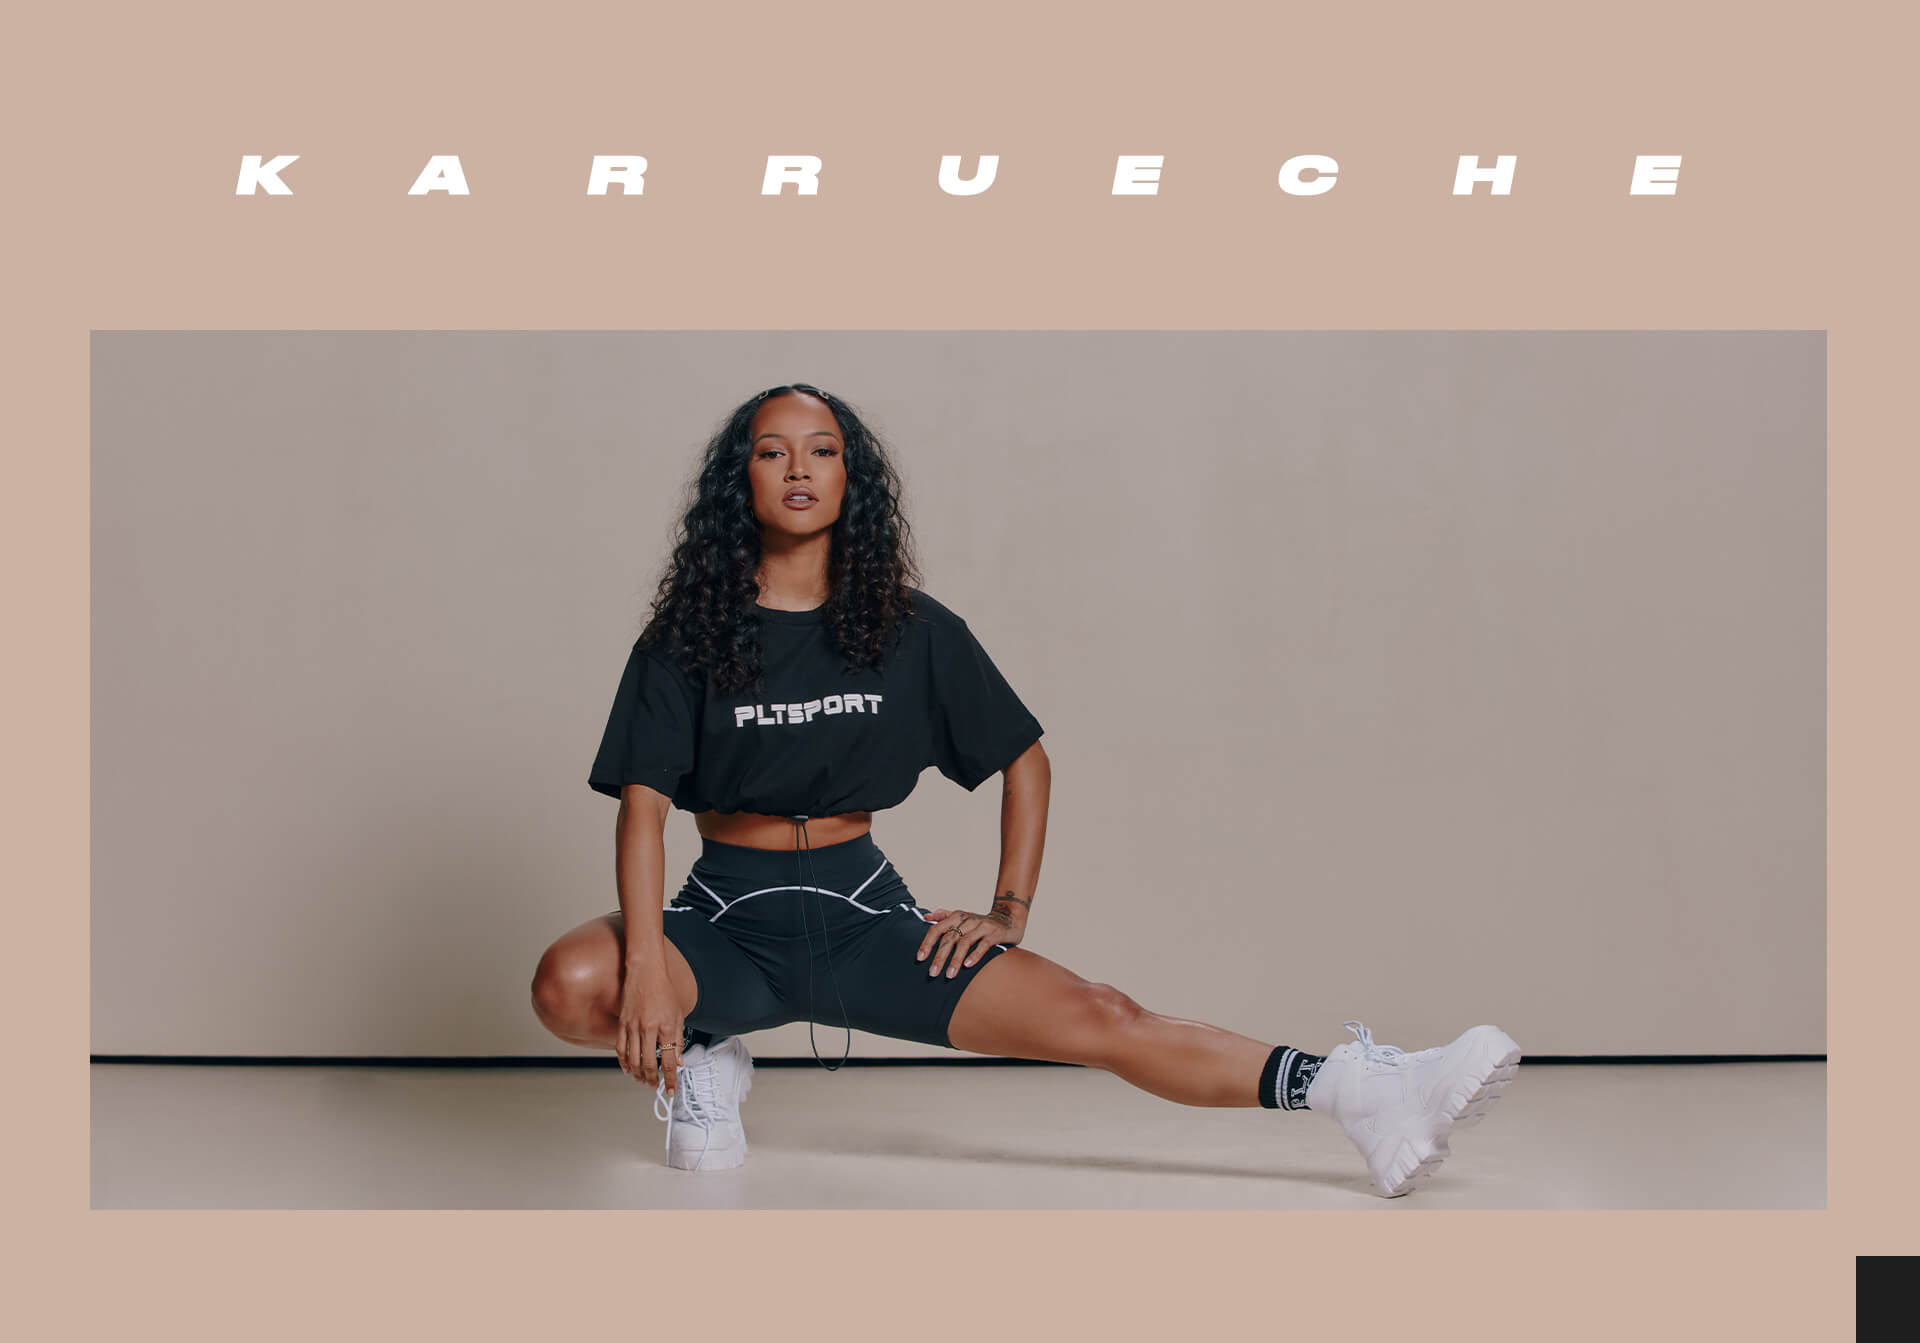 Karrueche Lookbook Image 12 Desktop